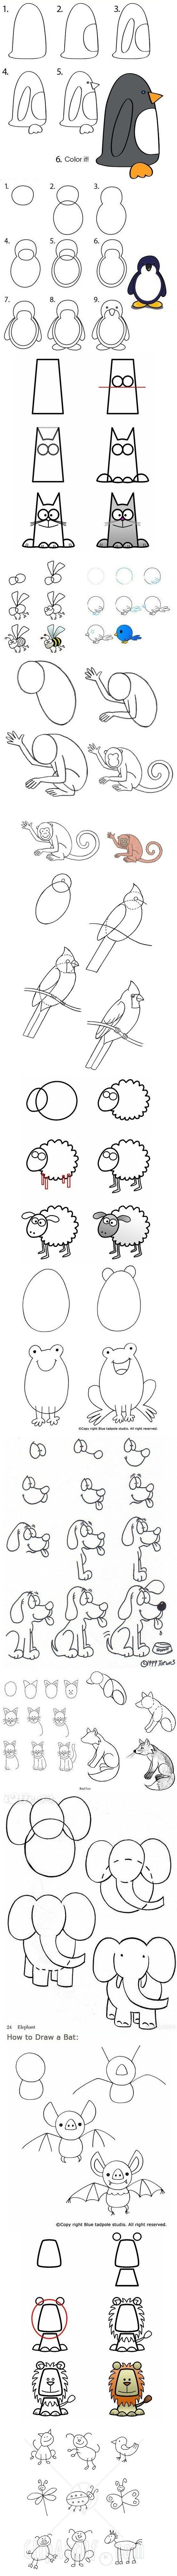 How to draw animals- it's fun to do these together and see how each one comes out different, while all learning from the same sketch!